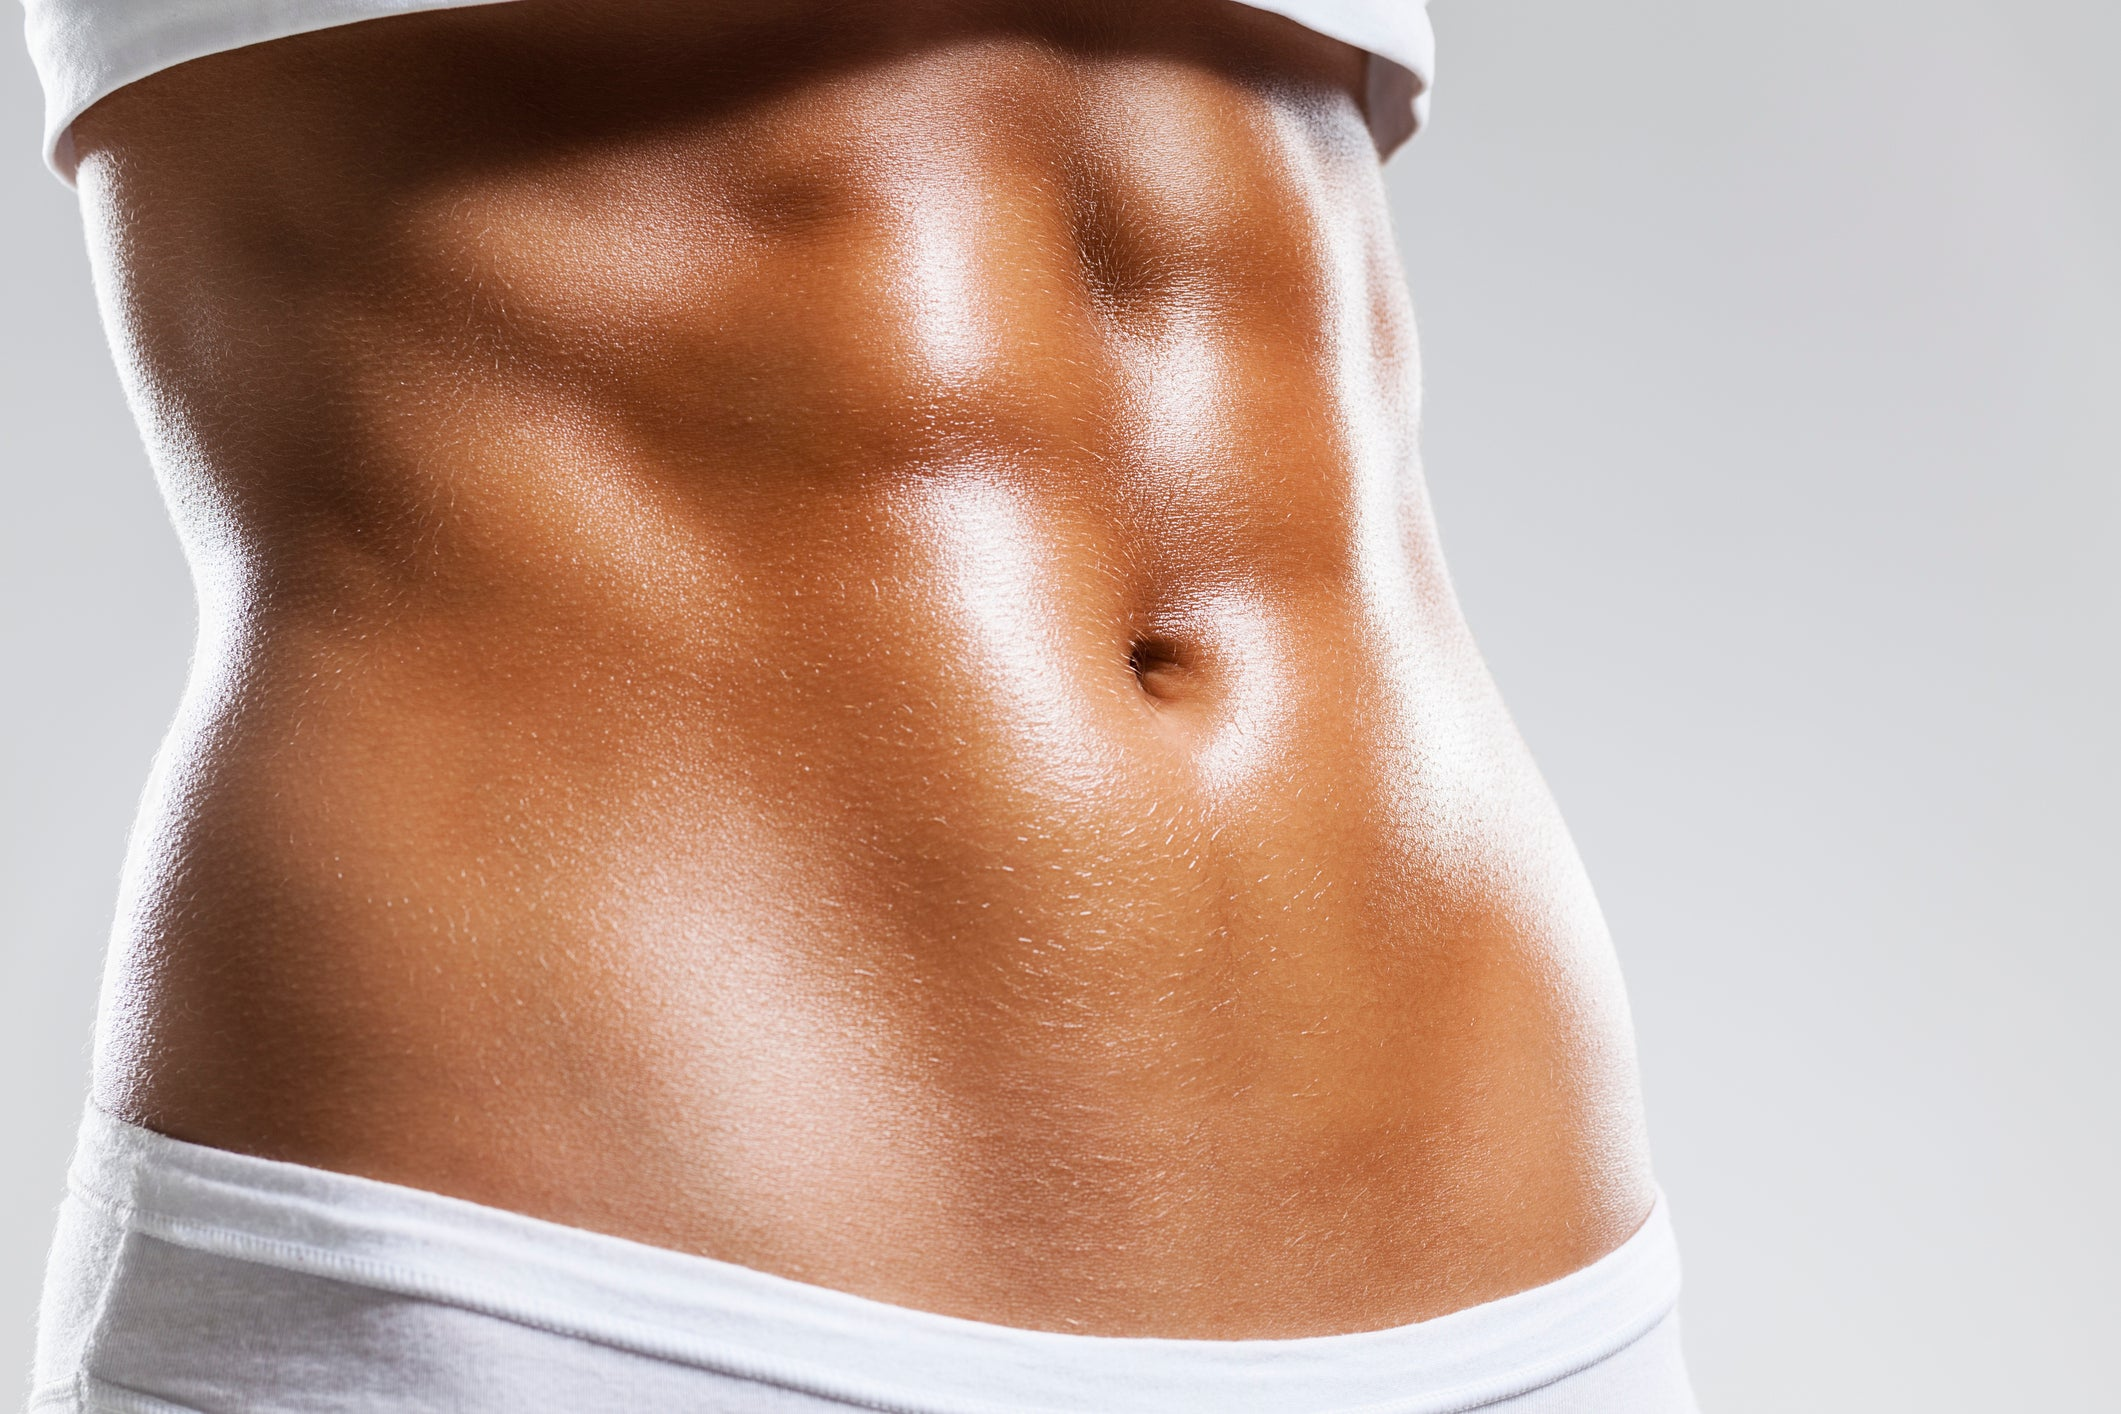 Breathing is the key to sculpting your abs, says personal trainer